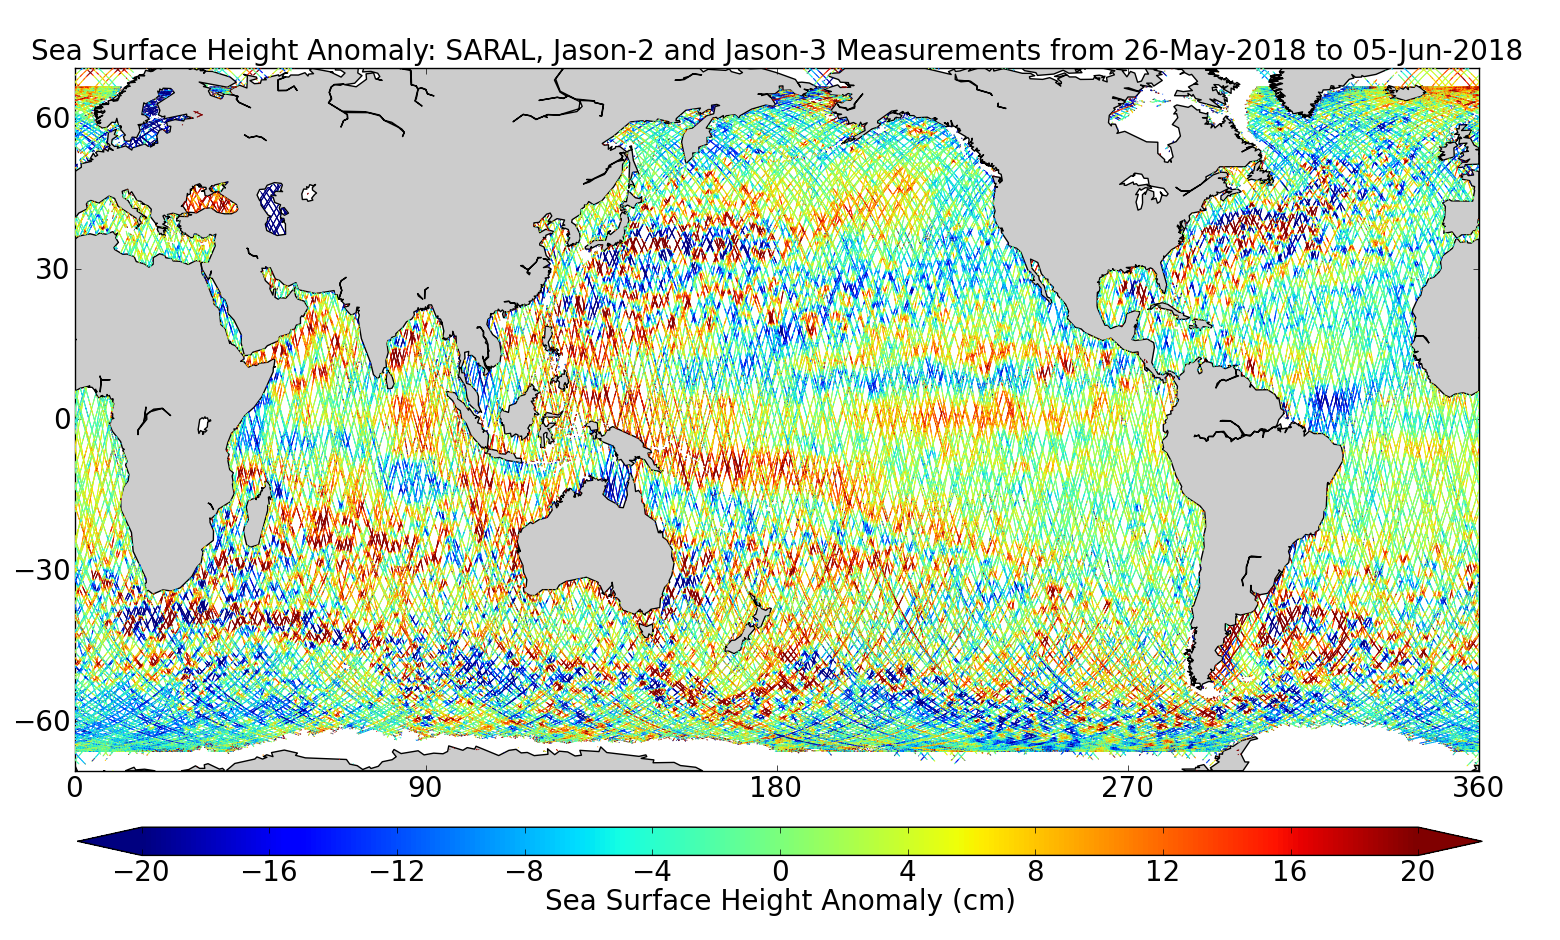 Sea Surface Height Anomaly: SARAL, Jason-2 and Jason-3 Measurements from 26-May-2018 to 05-Jun-2018